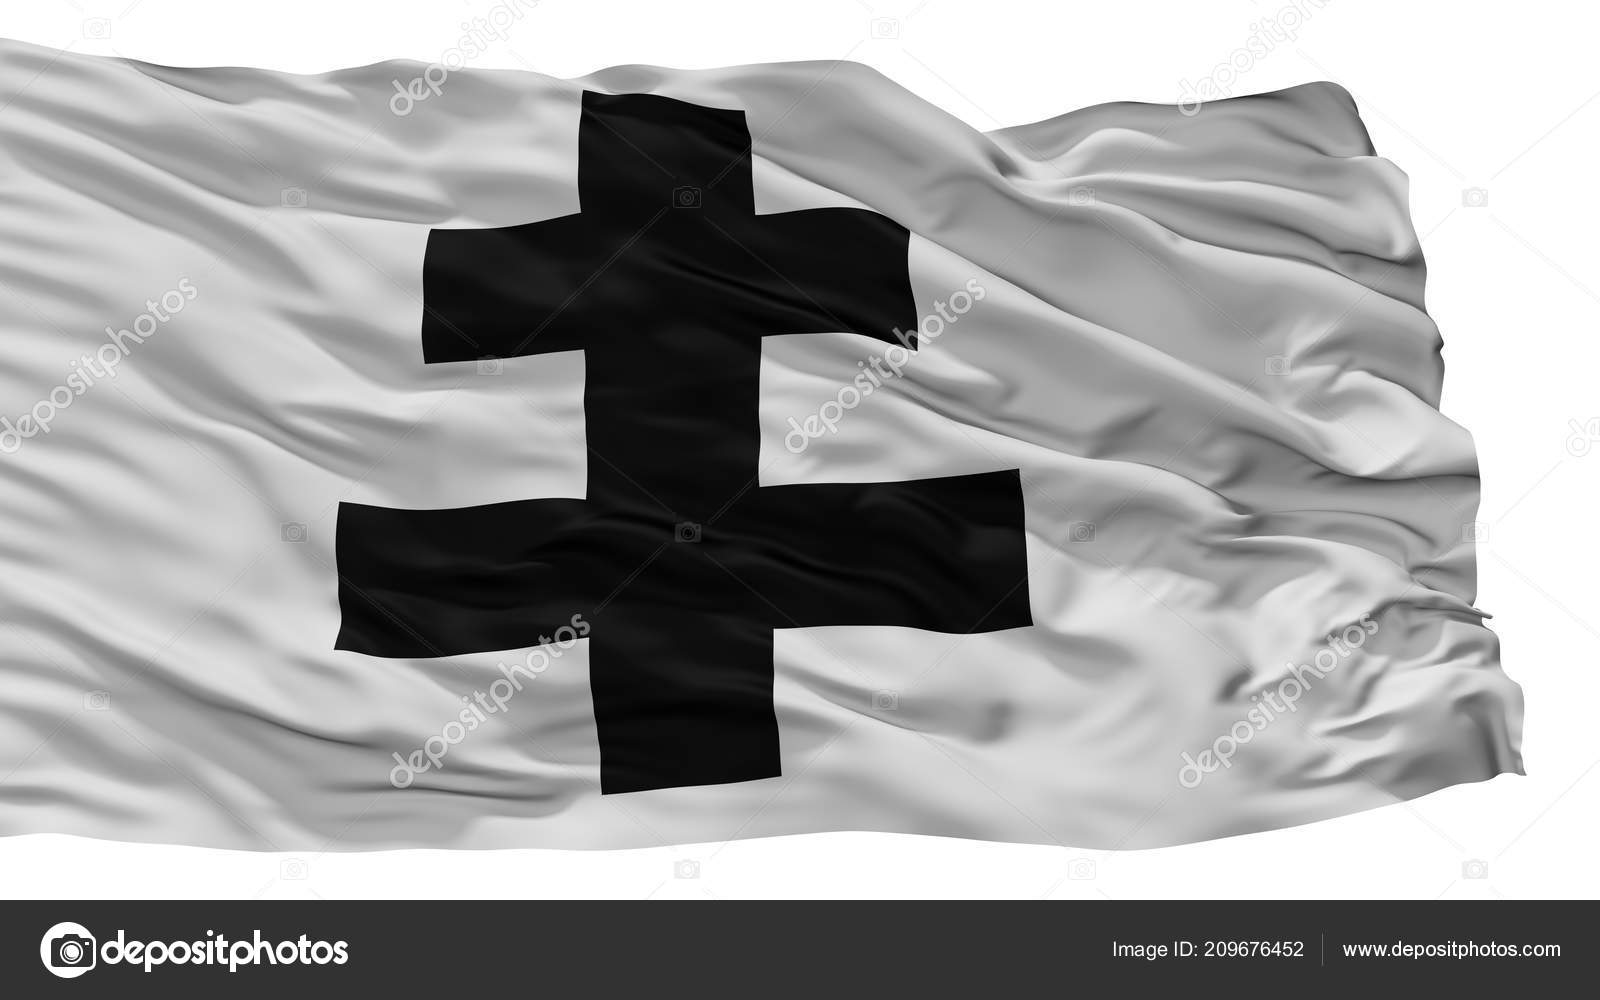 A l'aide ! Depositphotos_209676452-stock-photo-roeselare-city-flag-belgium-isolated